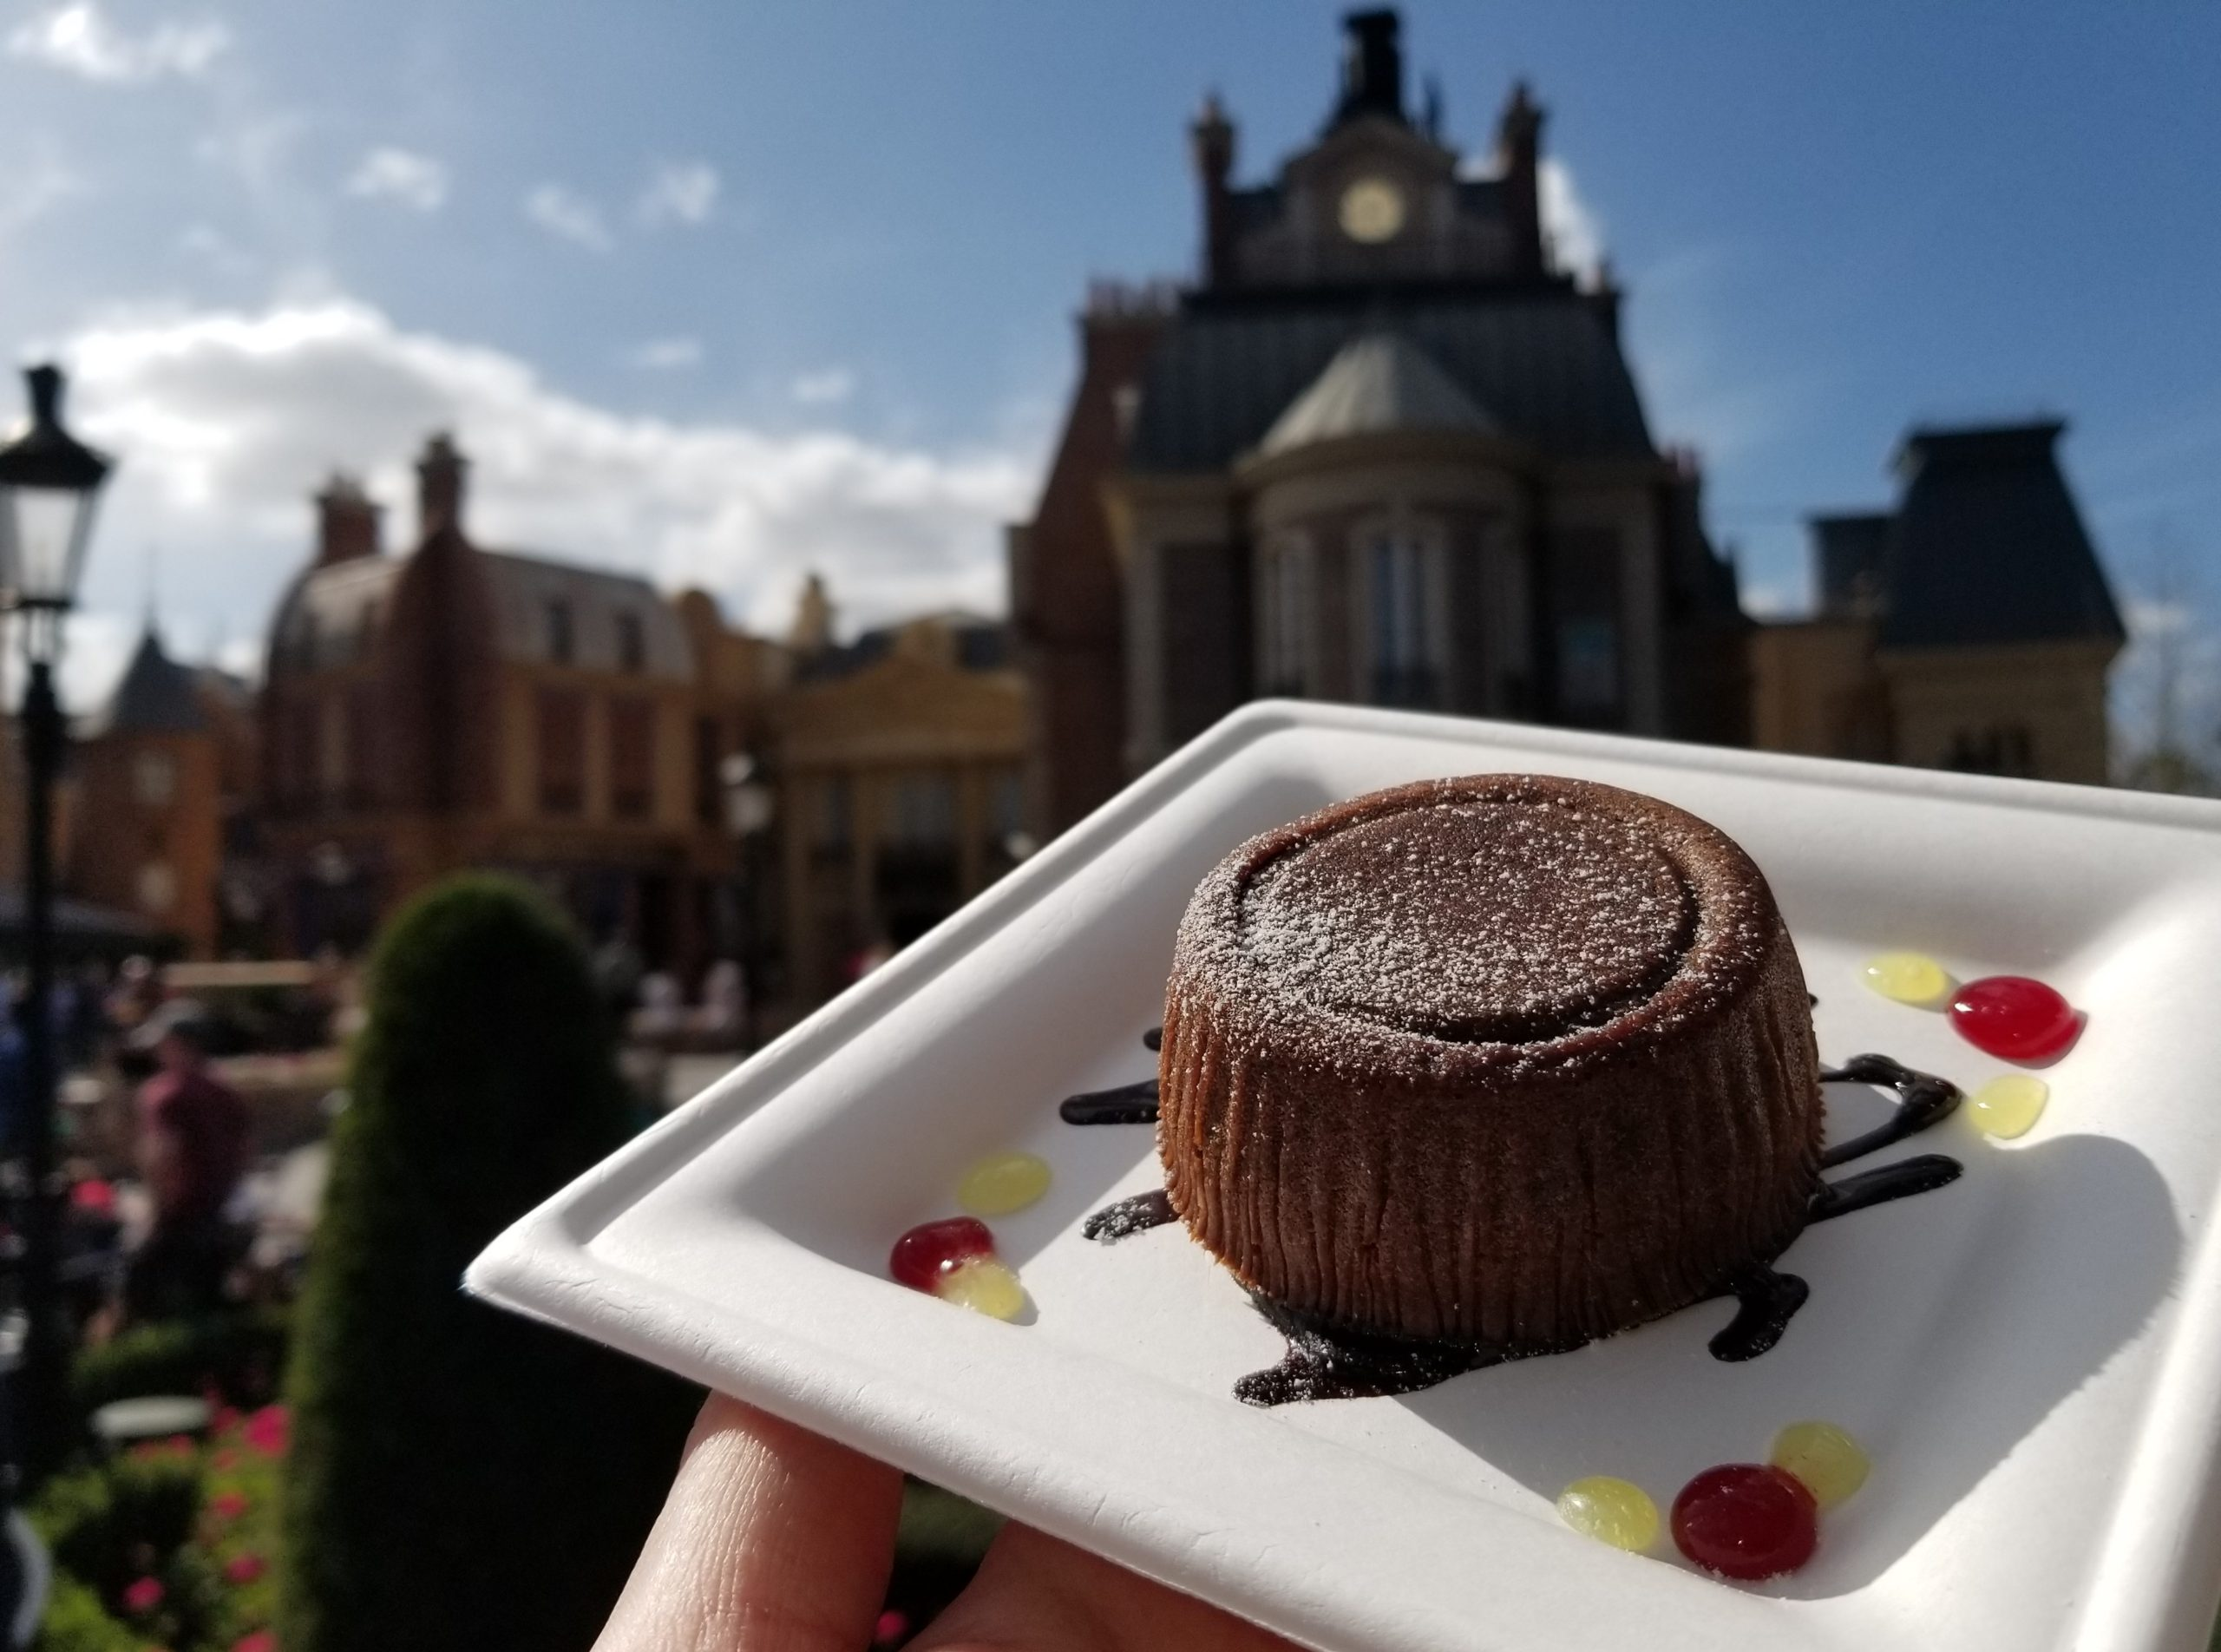 Moelleux Aux Chocolats Valrhona: Molten Chocolate Cake with Pure Origin Valrhona Chocolates from L'Art du Cuisine Francaise in France